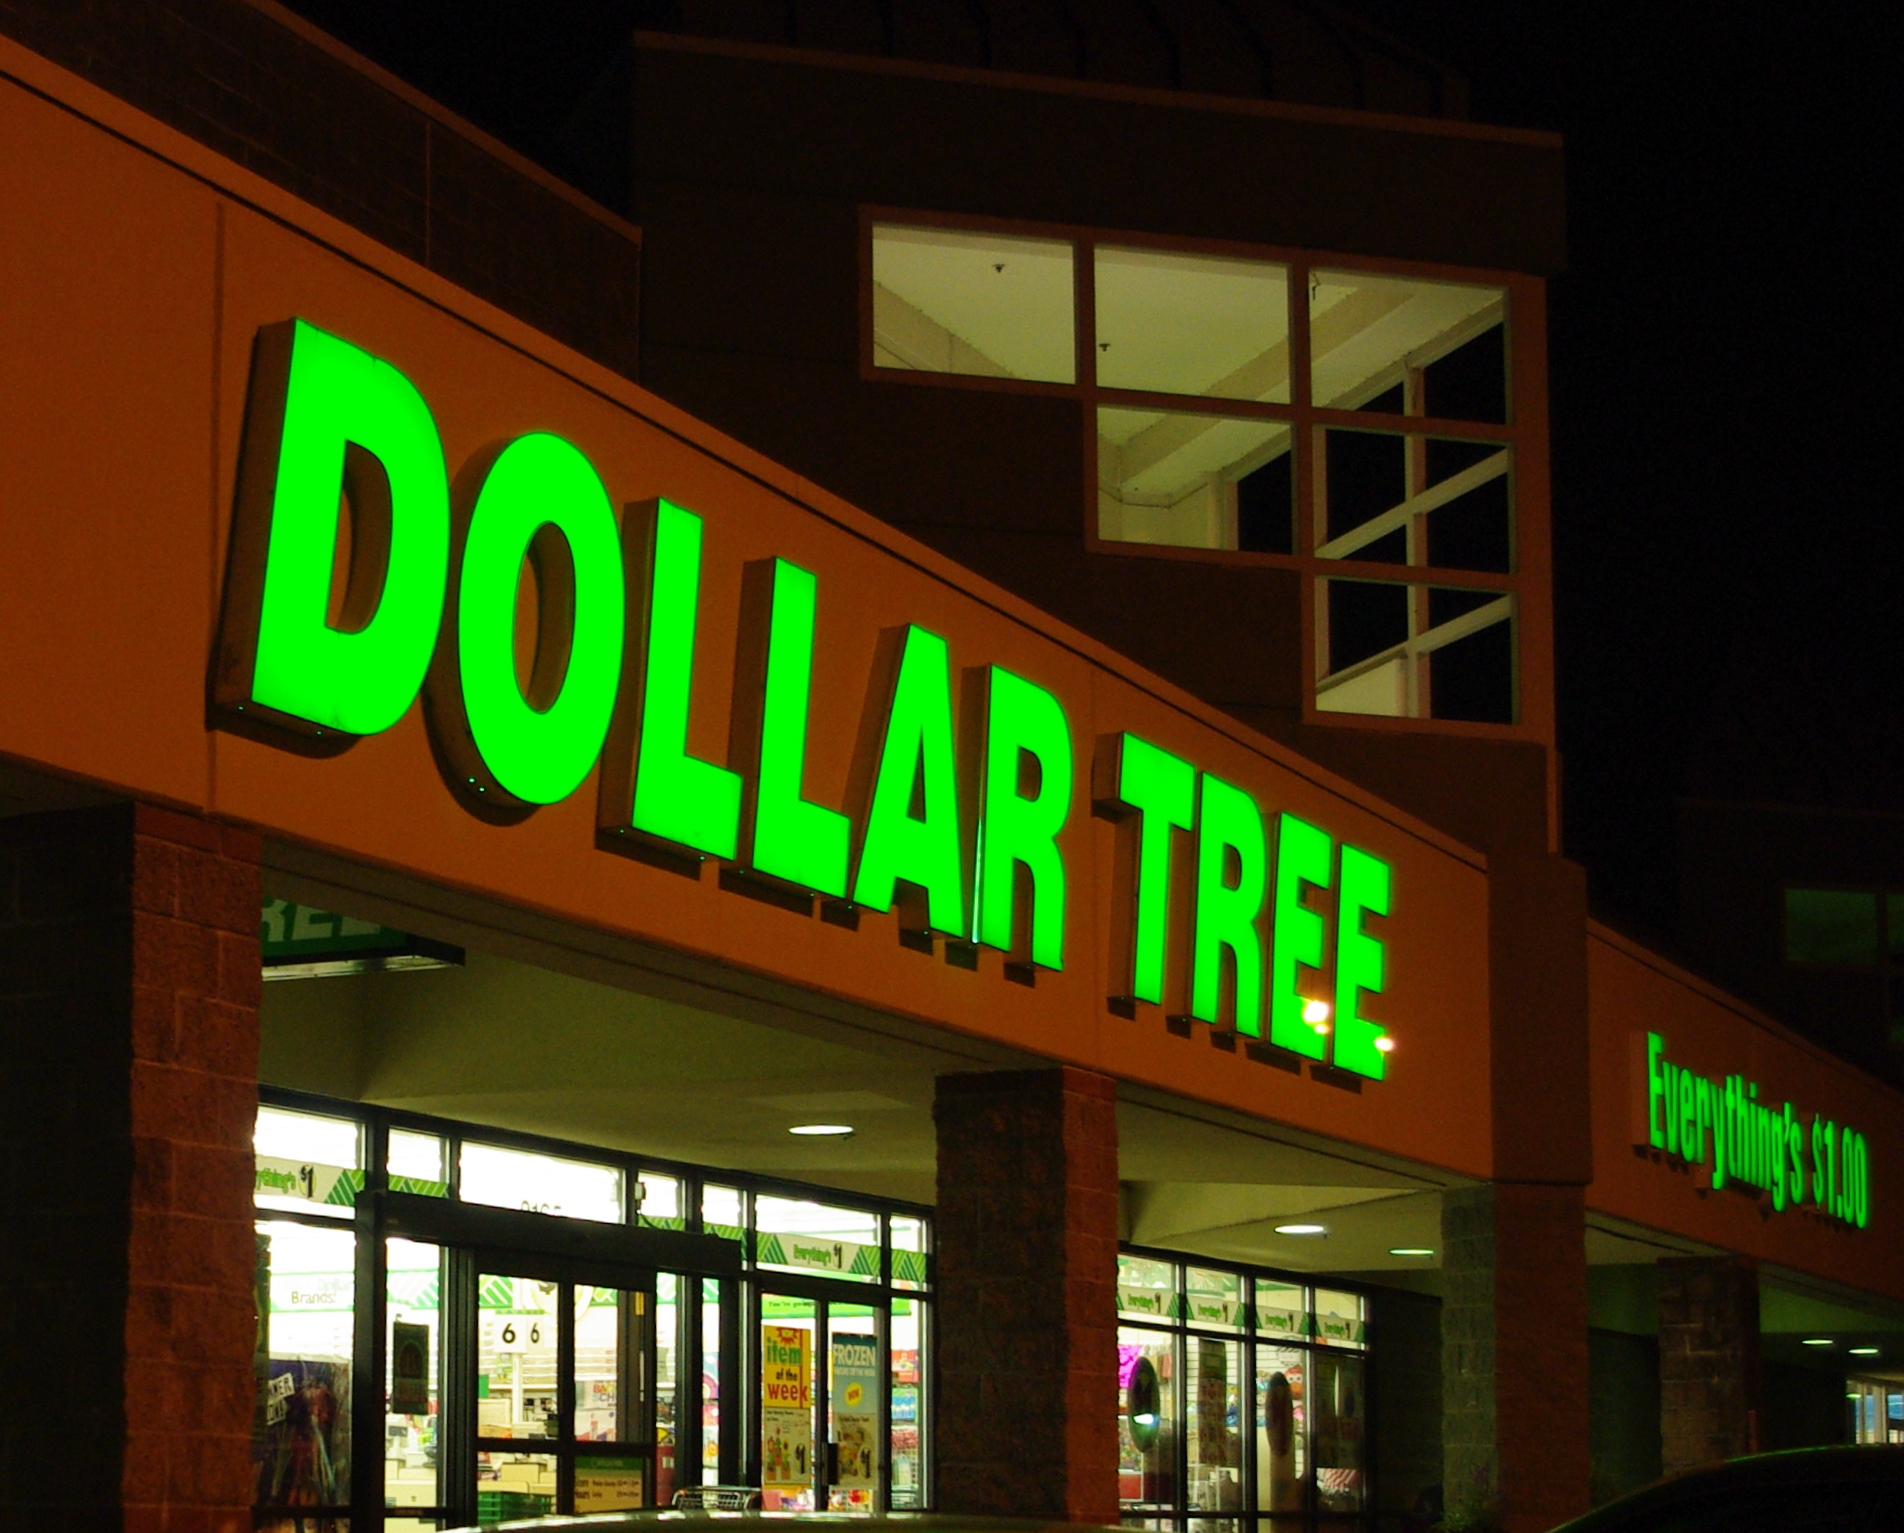 dollar tree strategic group Dollar tree displayed remarkable comps growth for the last several quarters, mainly due to competitive pricing and strategic store expansion plans, including remodeling and relocations.